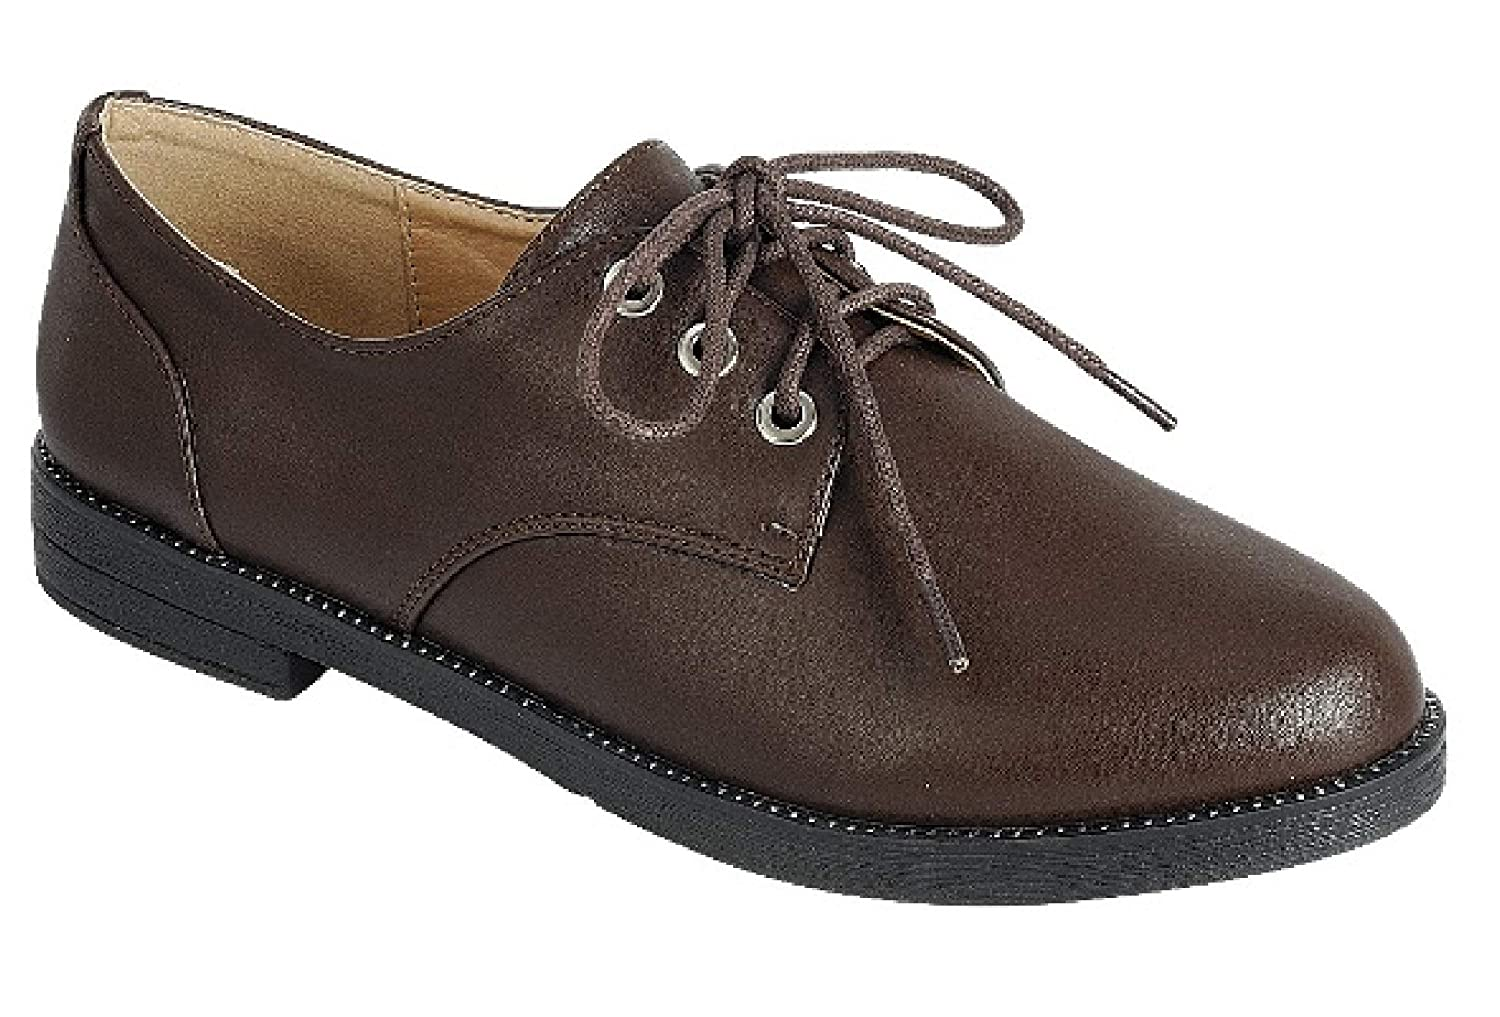 Assorted Colors Forte Top Selling Classic Oxford Lace Up for Women Ladies Teen Girls